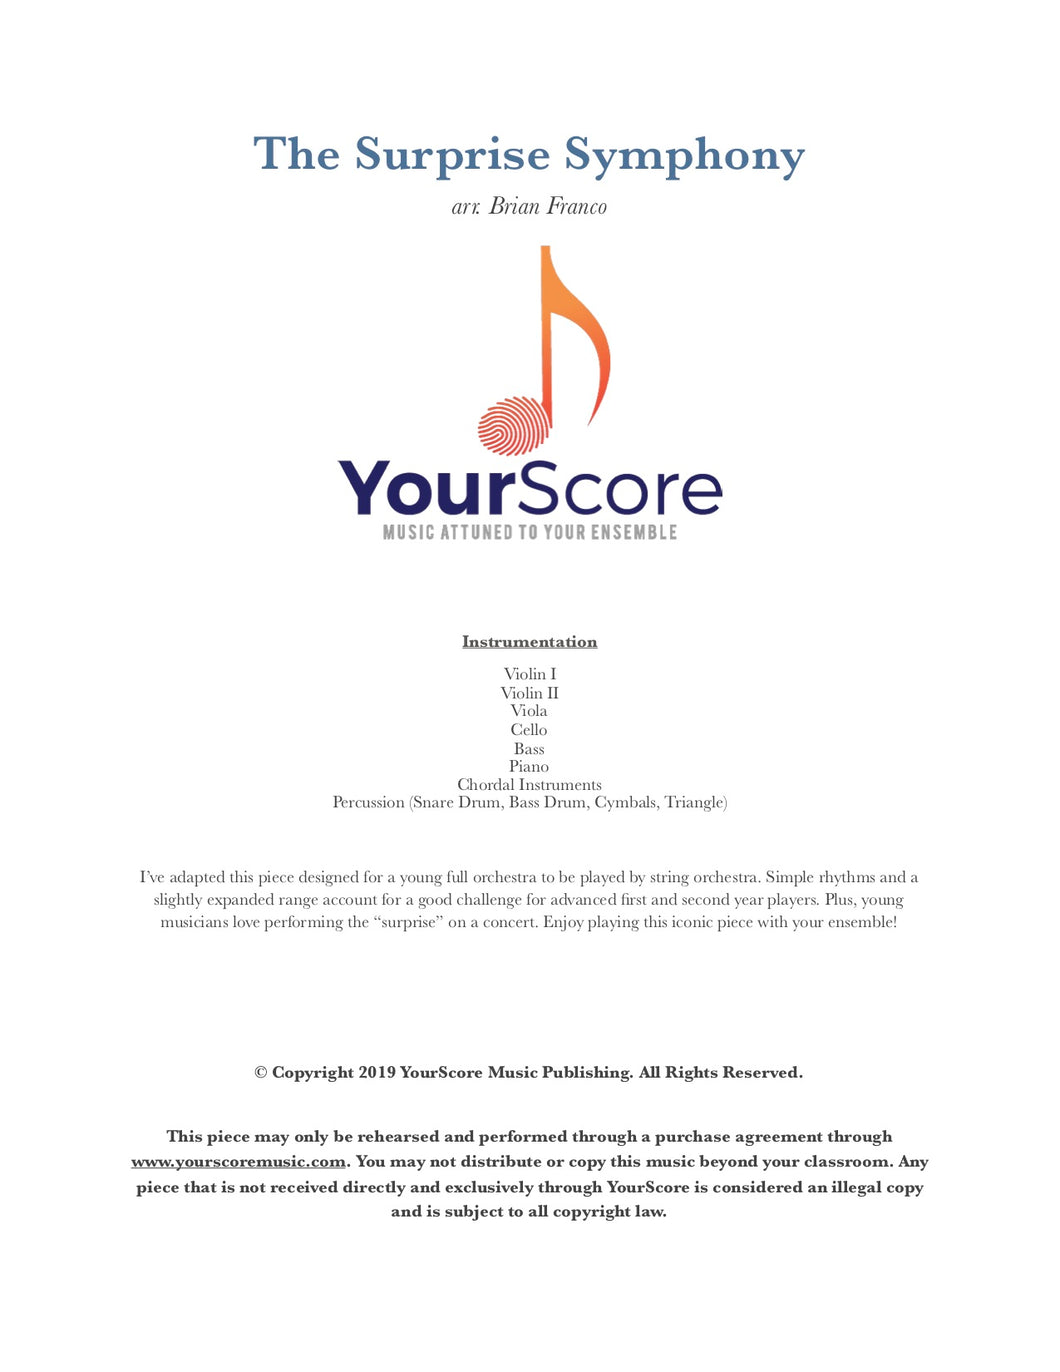 cover of The Surprise Symphony, an adaptable piece of elementary orchestra music arranged by Brian Franco